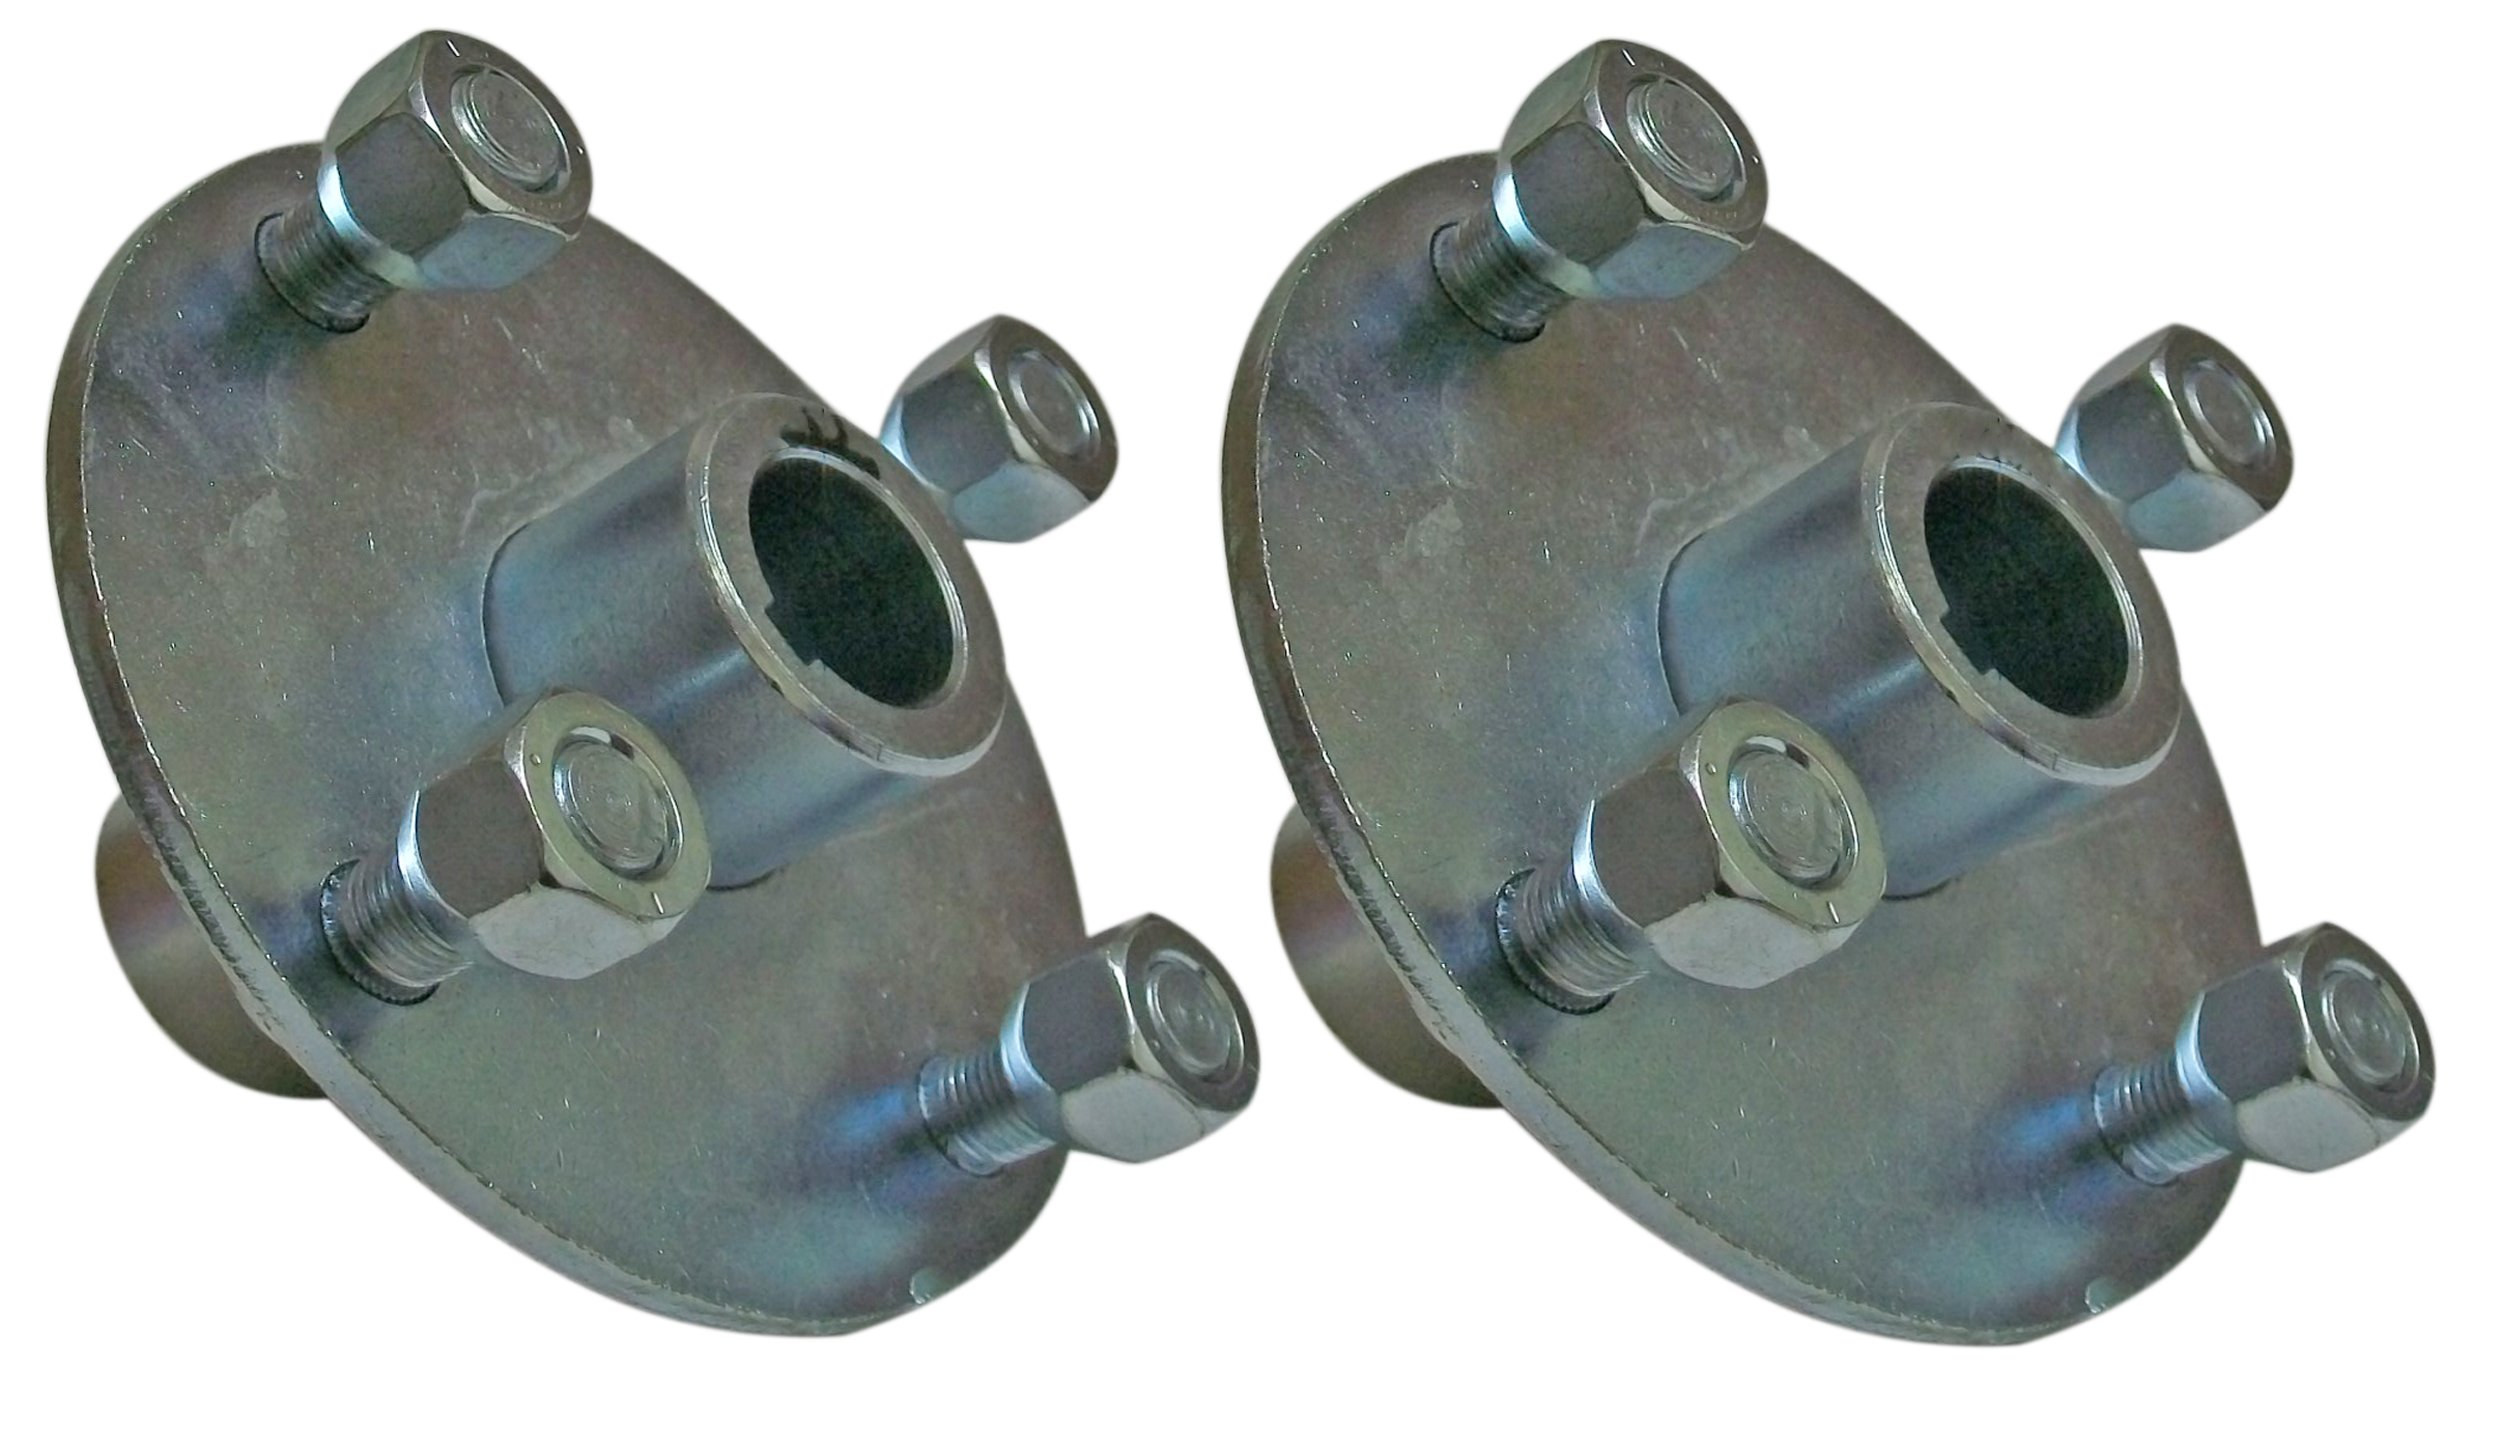 Set of 2-4x4 Galvanized Wheel Hubs 1'' Bore with Lug Nuts for Go Karts Trailers Lawn Equipment